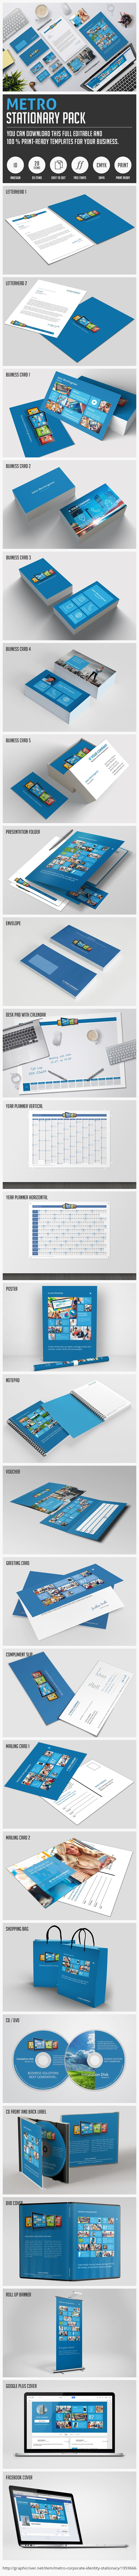 You can download this full editable and print-ready metro stationary pack from mikinger at http://graphicriver.net/item/metro-corporate-identity-stationary/1959666?ref=mikinger. A complete metro stationery within all print stuff you might need in your daily business. The iconsymbols are free dingbatsfont, you can choose any dingbats font which matches to your theme. Free dingbatfonts are on hundreds of free fontsites in the www for free download and free using.